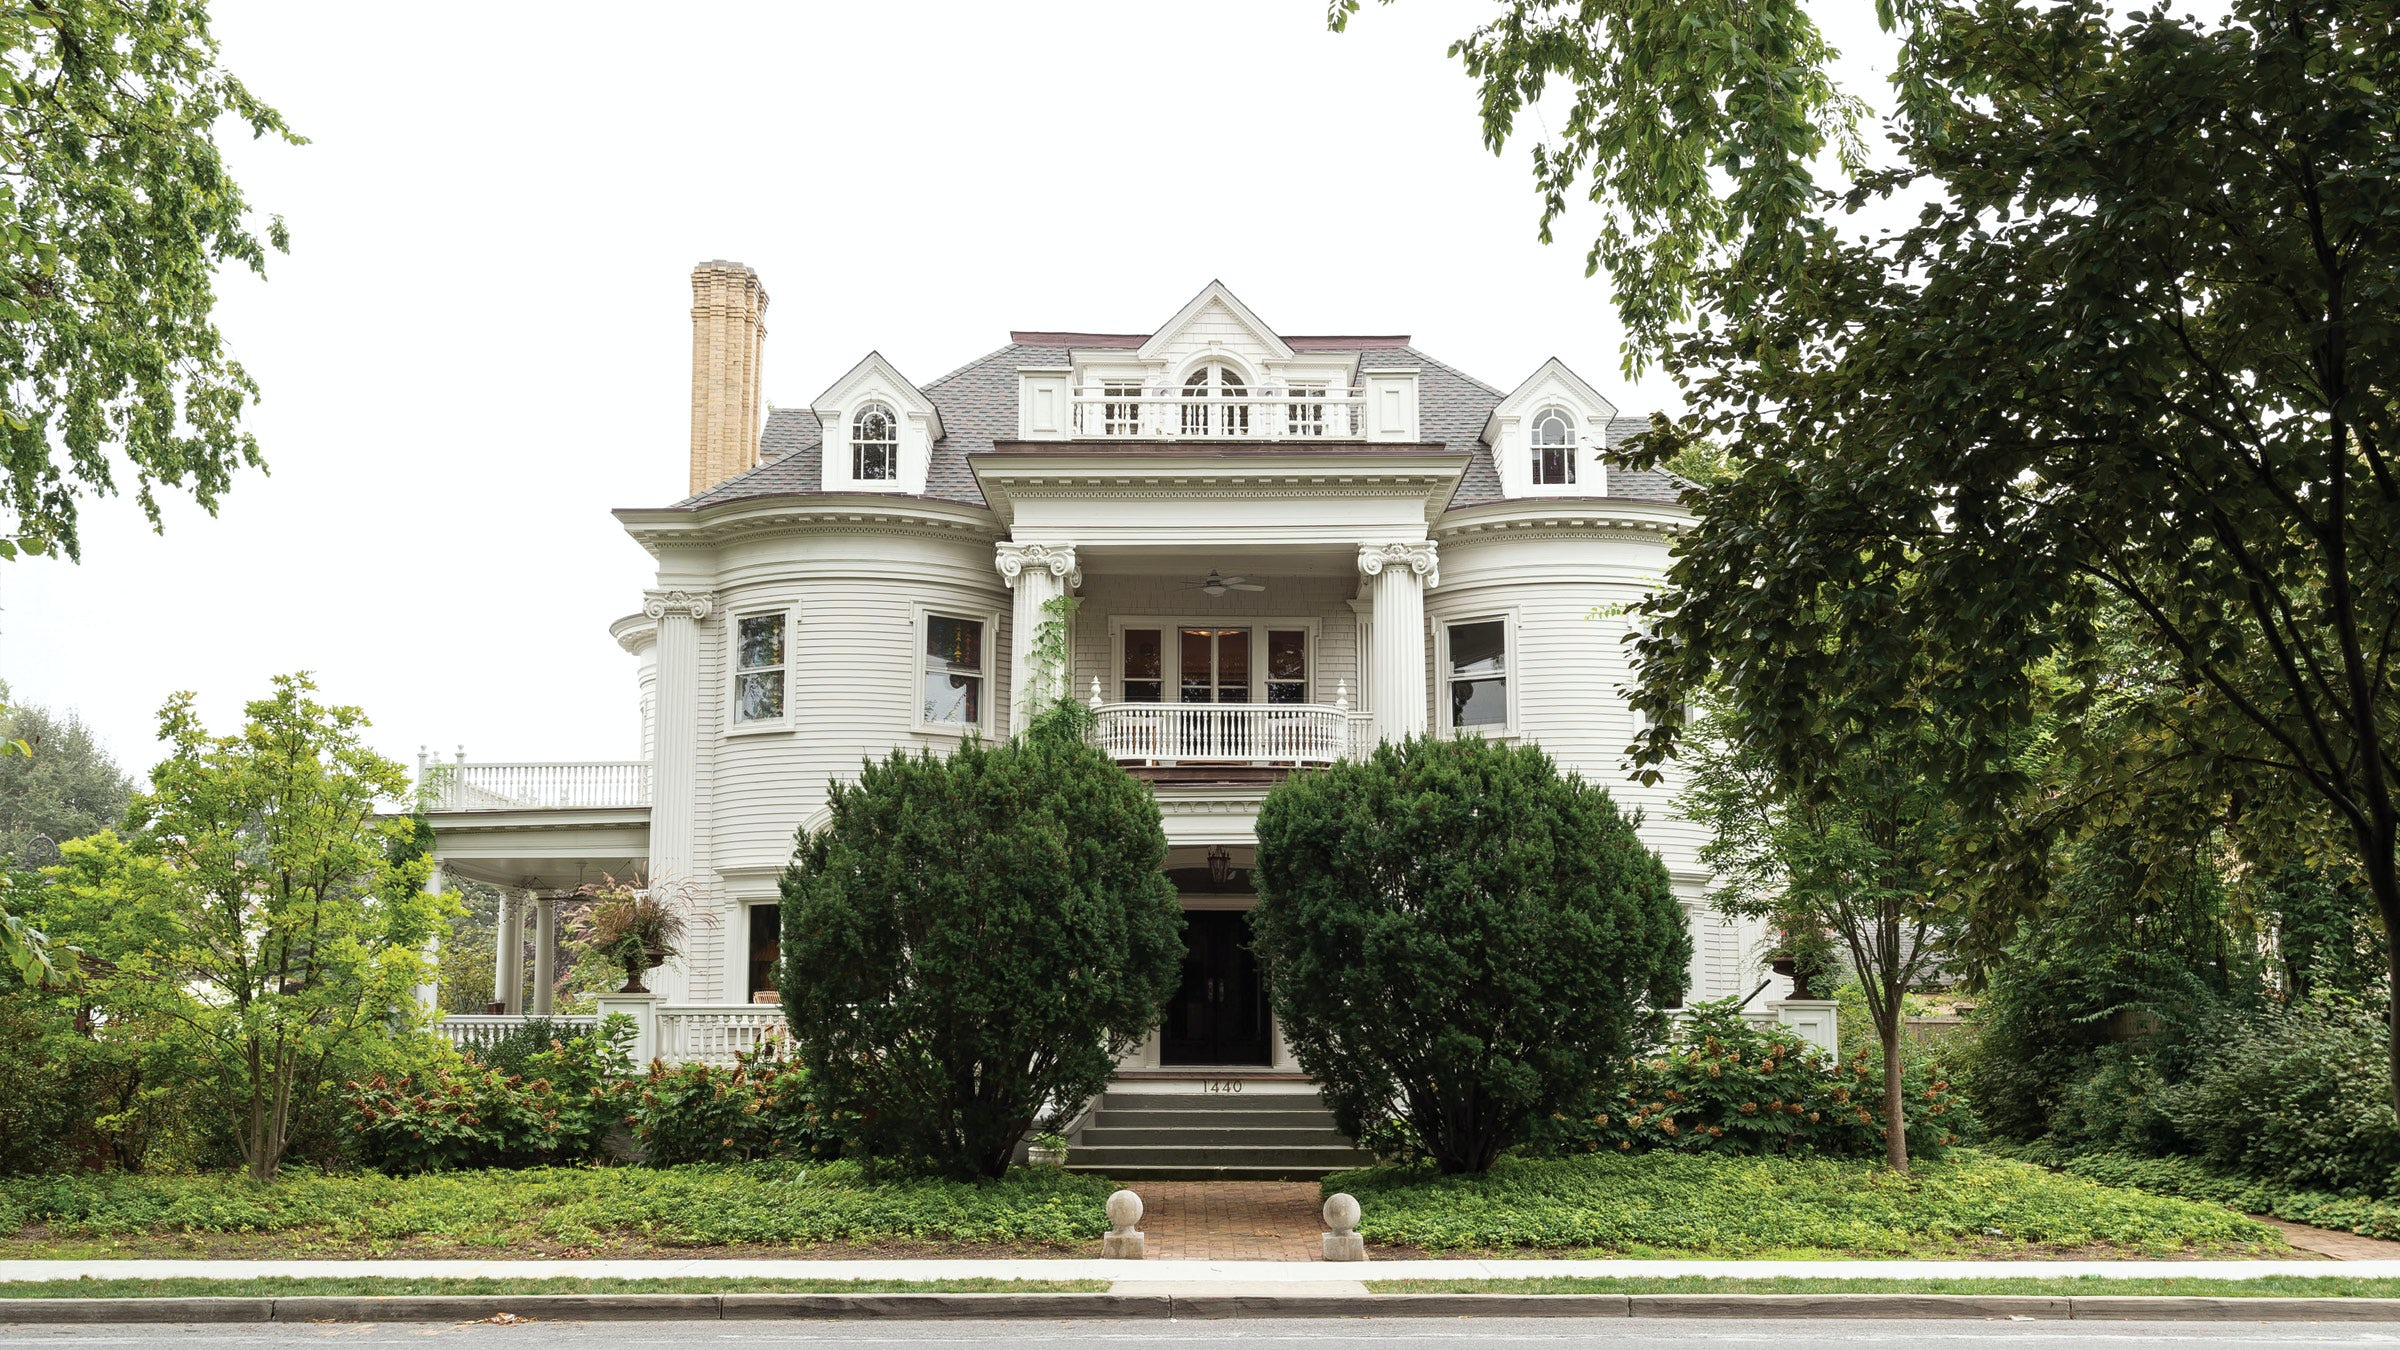 gallery image for Prospect Park South House